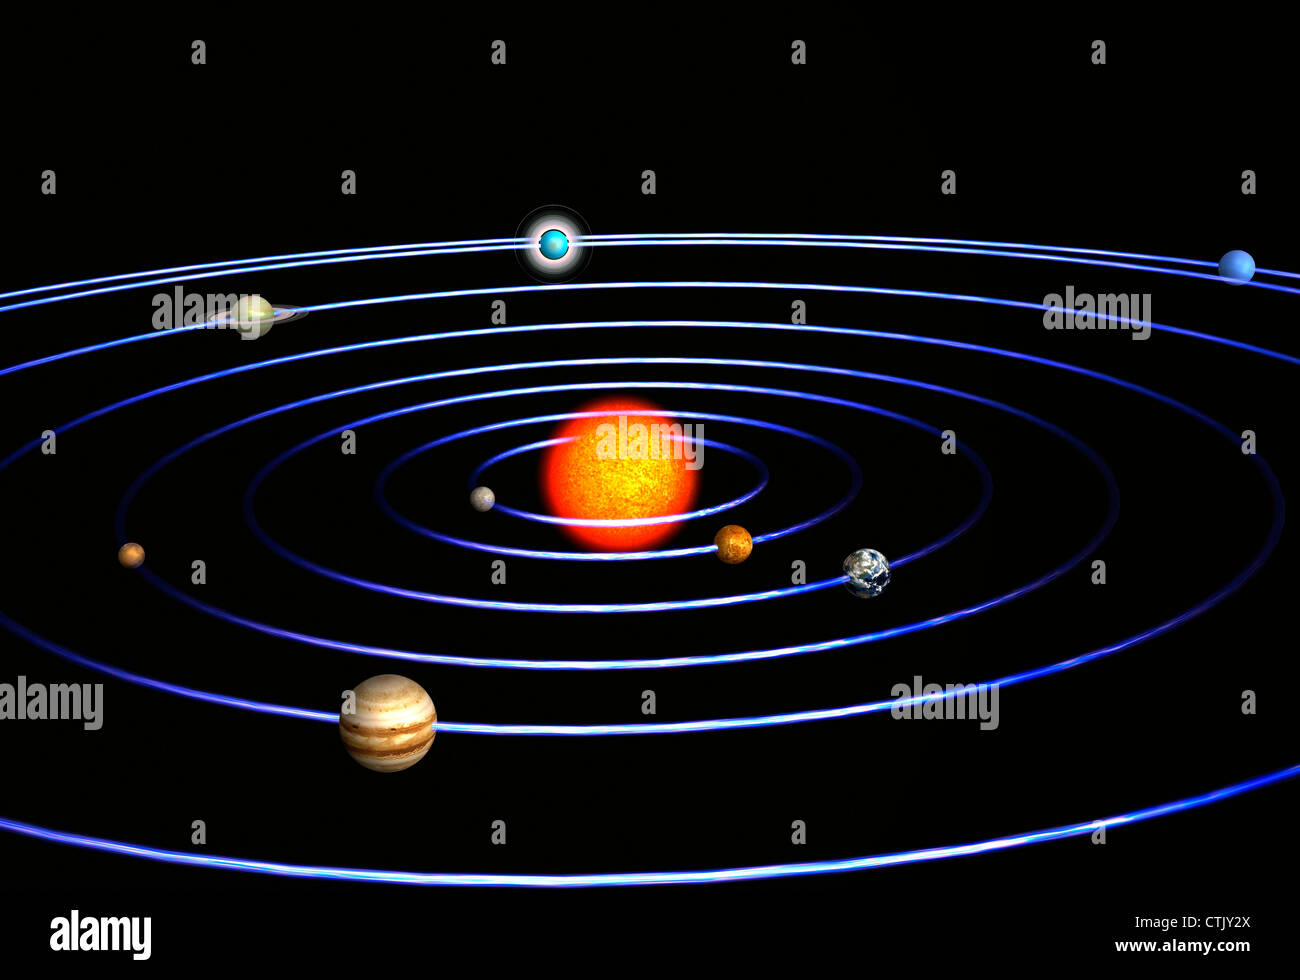 sun as center of solar system - photo #7